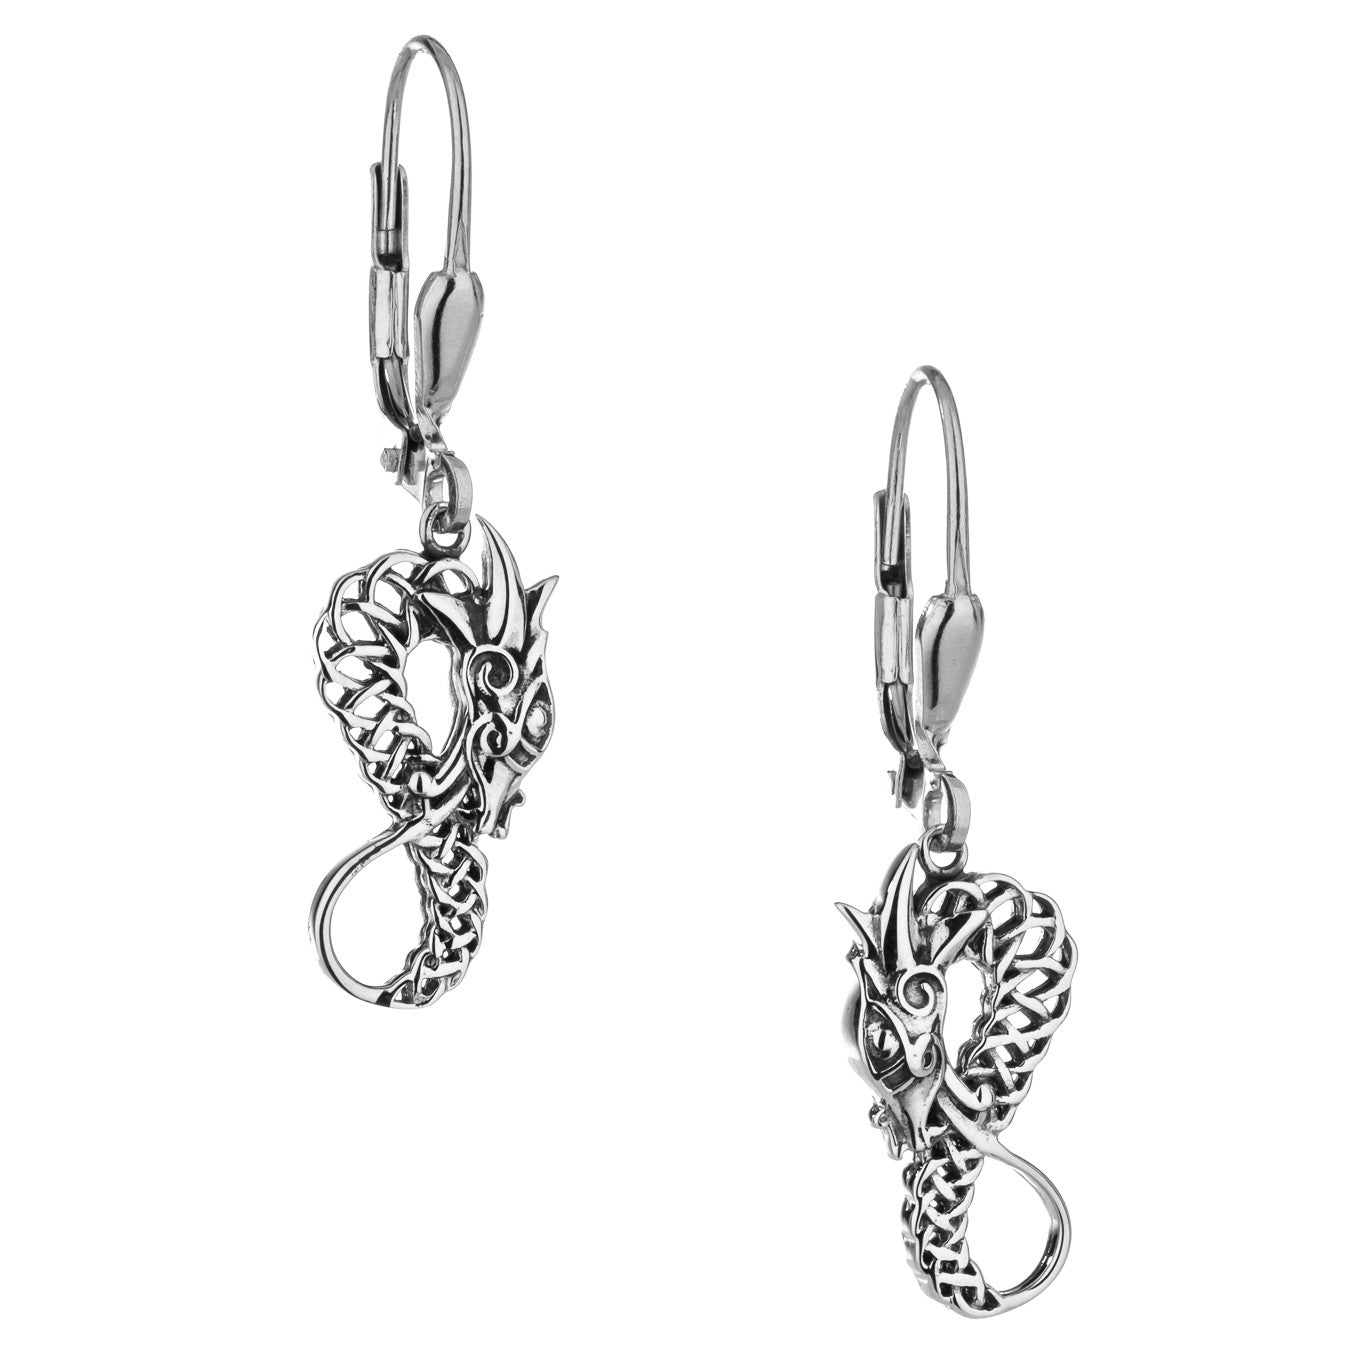 Norse Forge Dragon Earrings - Sterling Silver